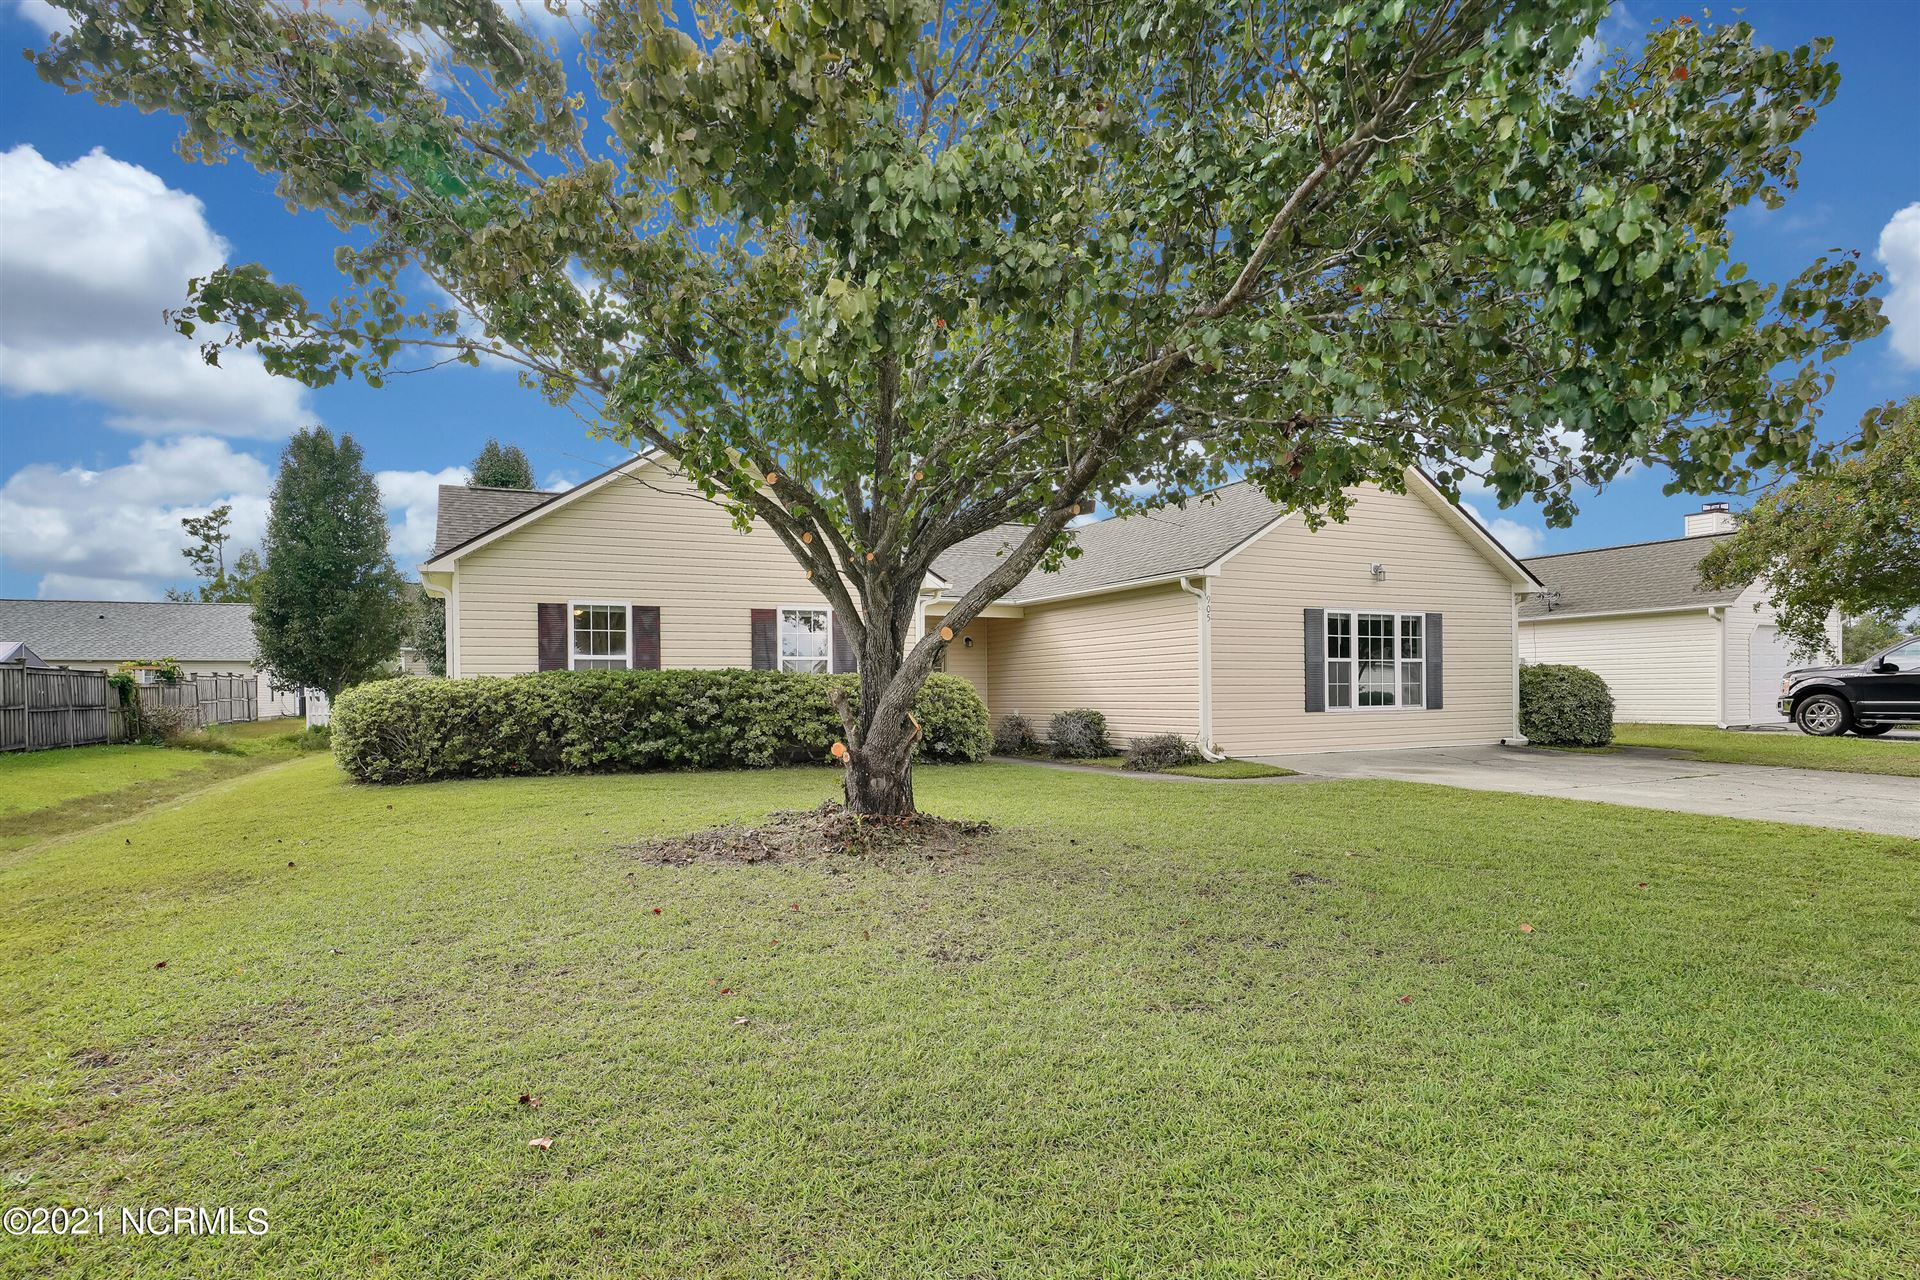 Photo of 905 Clydesdale Court, Wilmington, NC 28411 (MLS # 100291408)